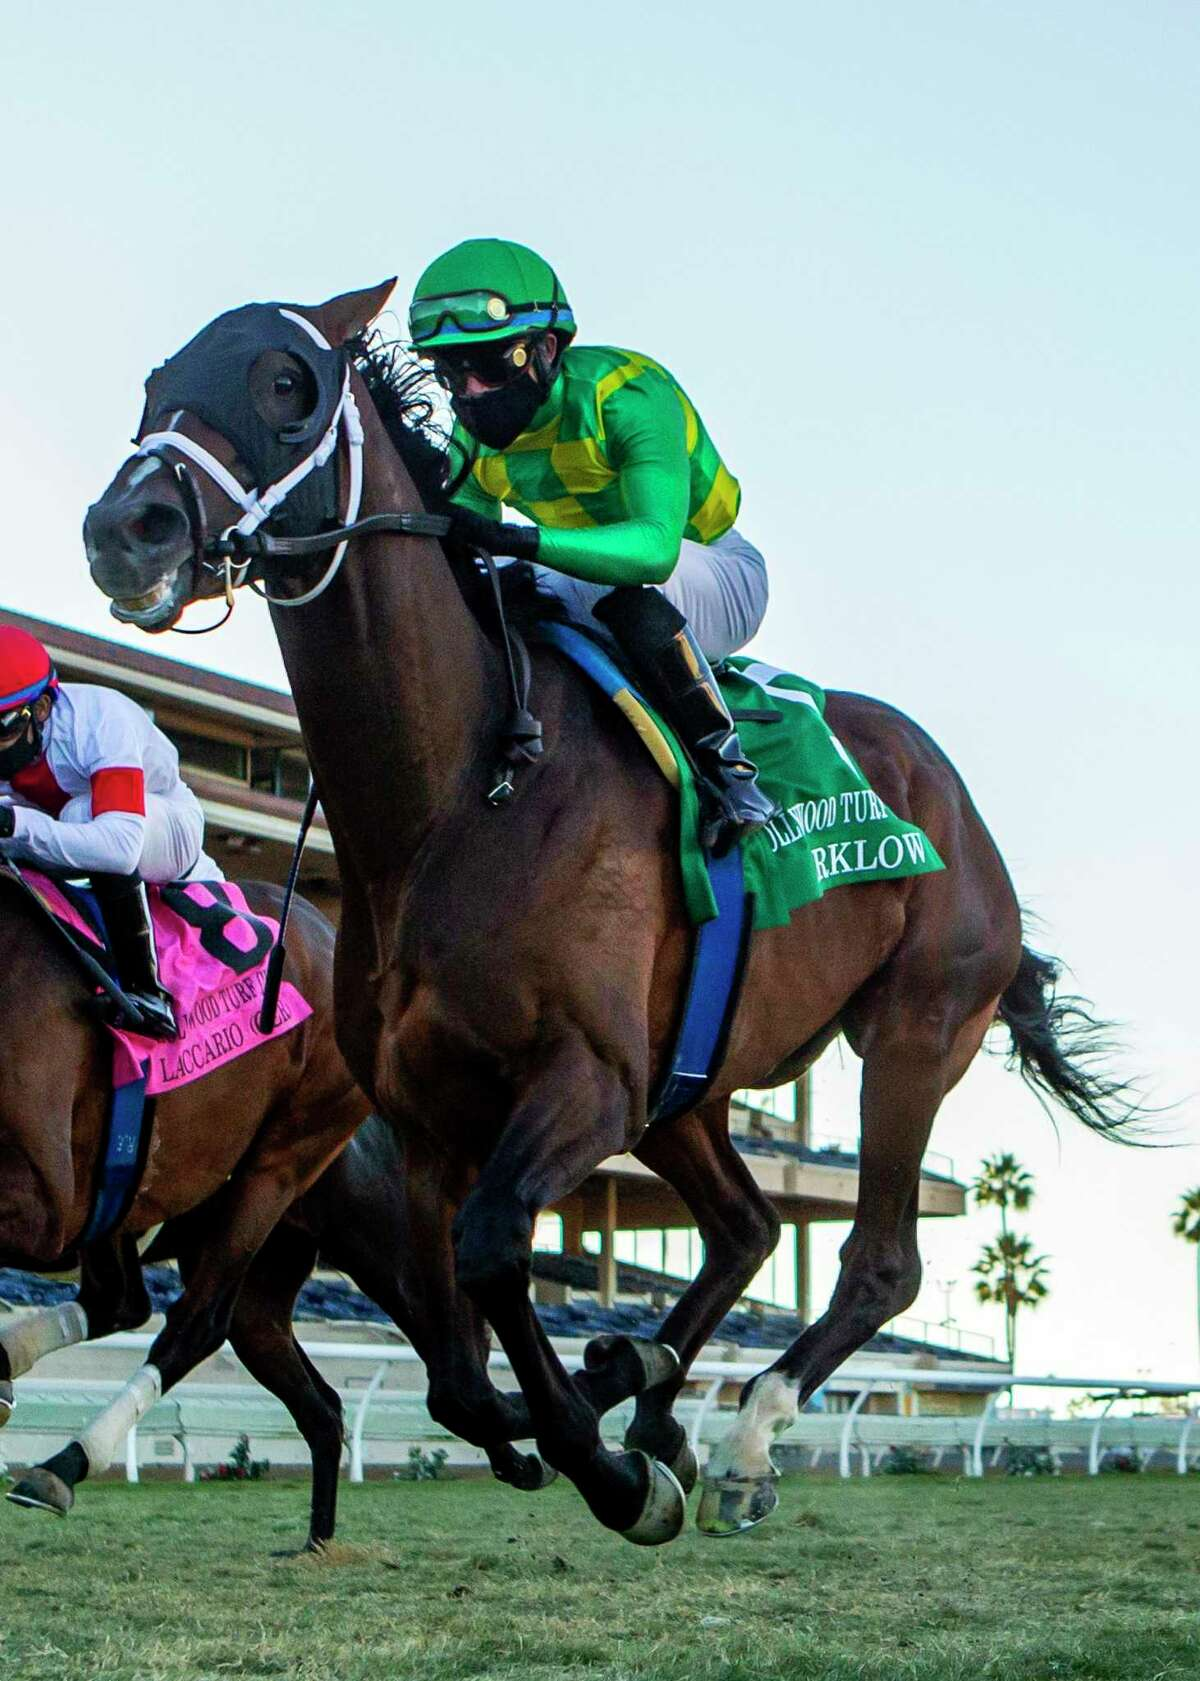 Arklow and jockey Joel Rosario win the Hollywood Turf Cup horse race on Friday in Del Mar, Calif.